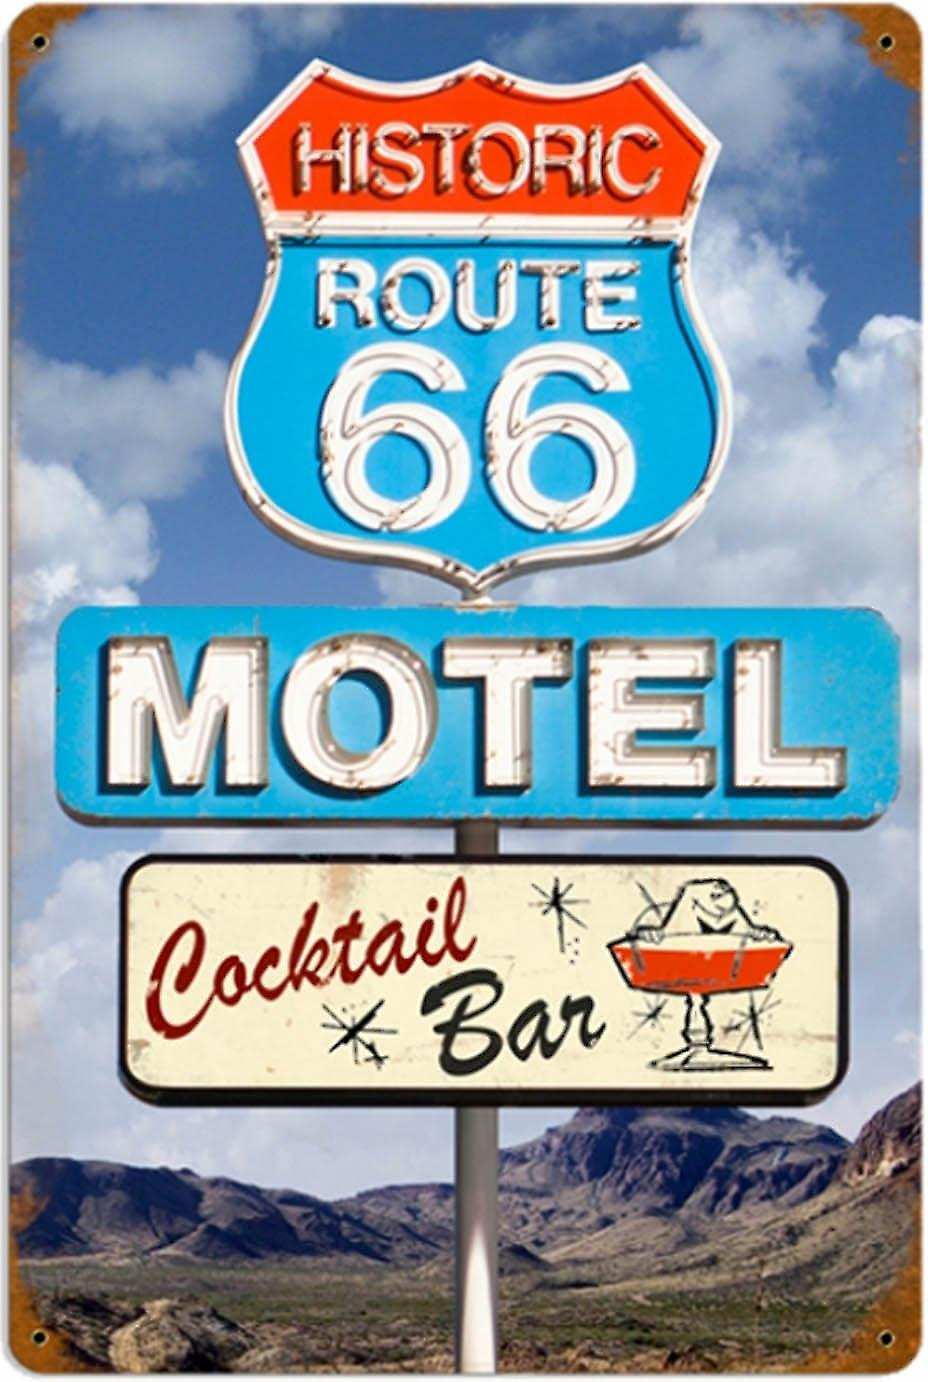 Route 66 Motel Cocktail Bar rusted metal sign (pst 1812)